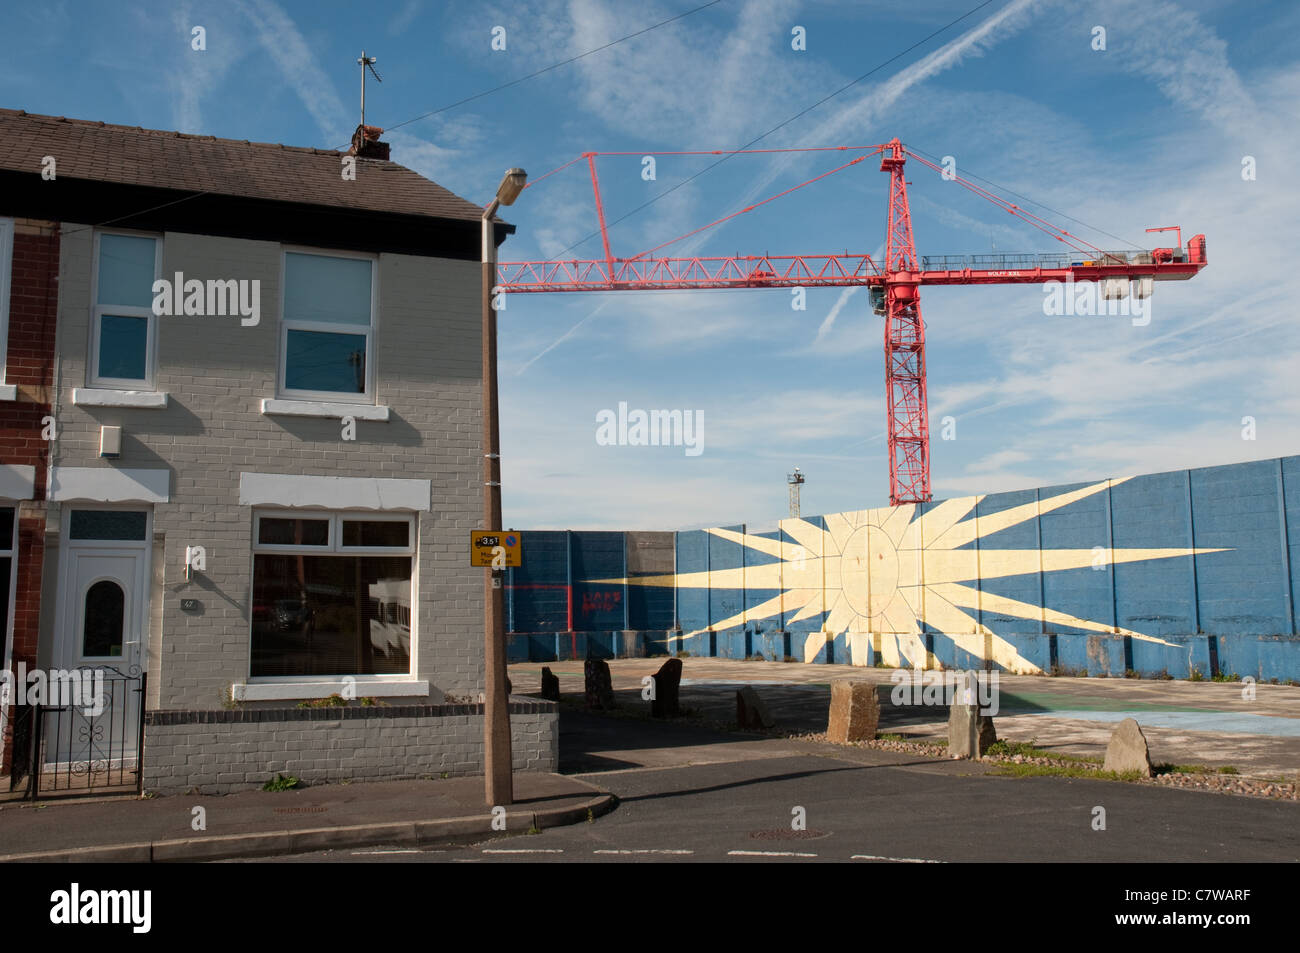 Industry alongside residential property in Reddish,Stockport,Greater Manchester. - Stock Image